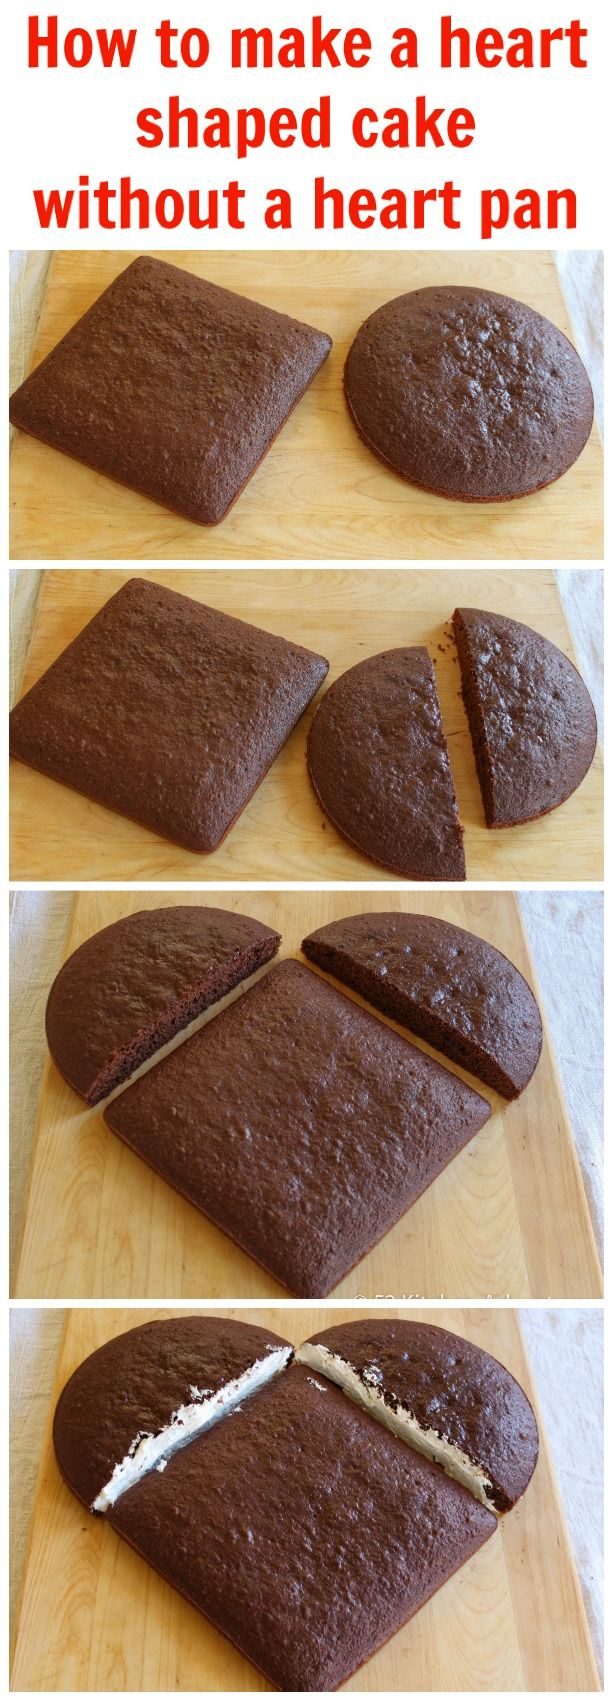 How to make a heart shaped cake without a heart pan                                                                                                                                                                                 Mais